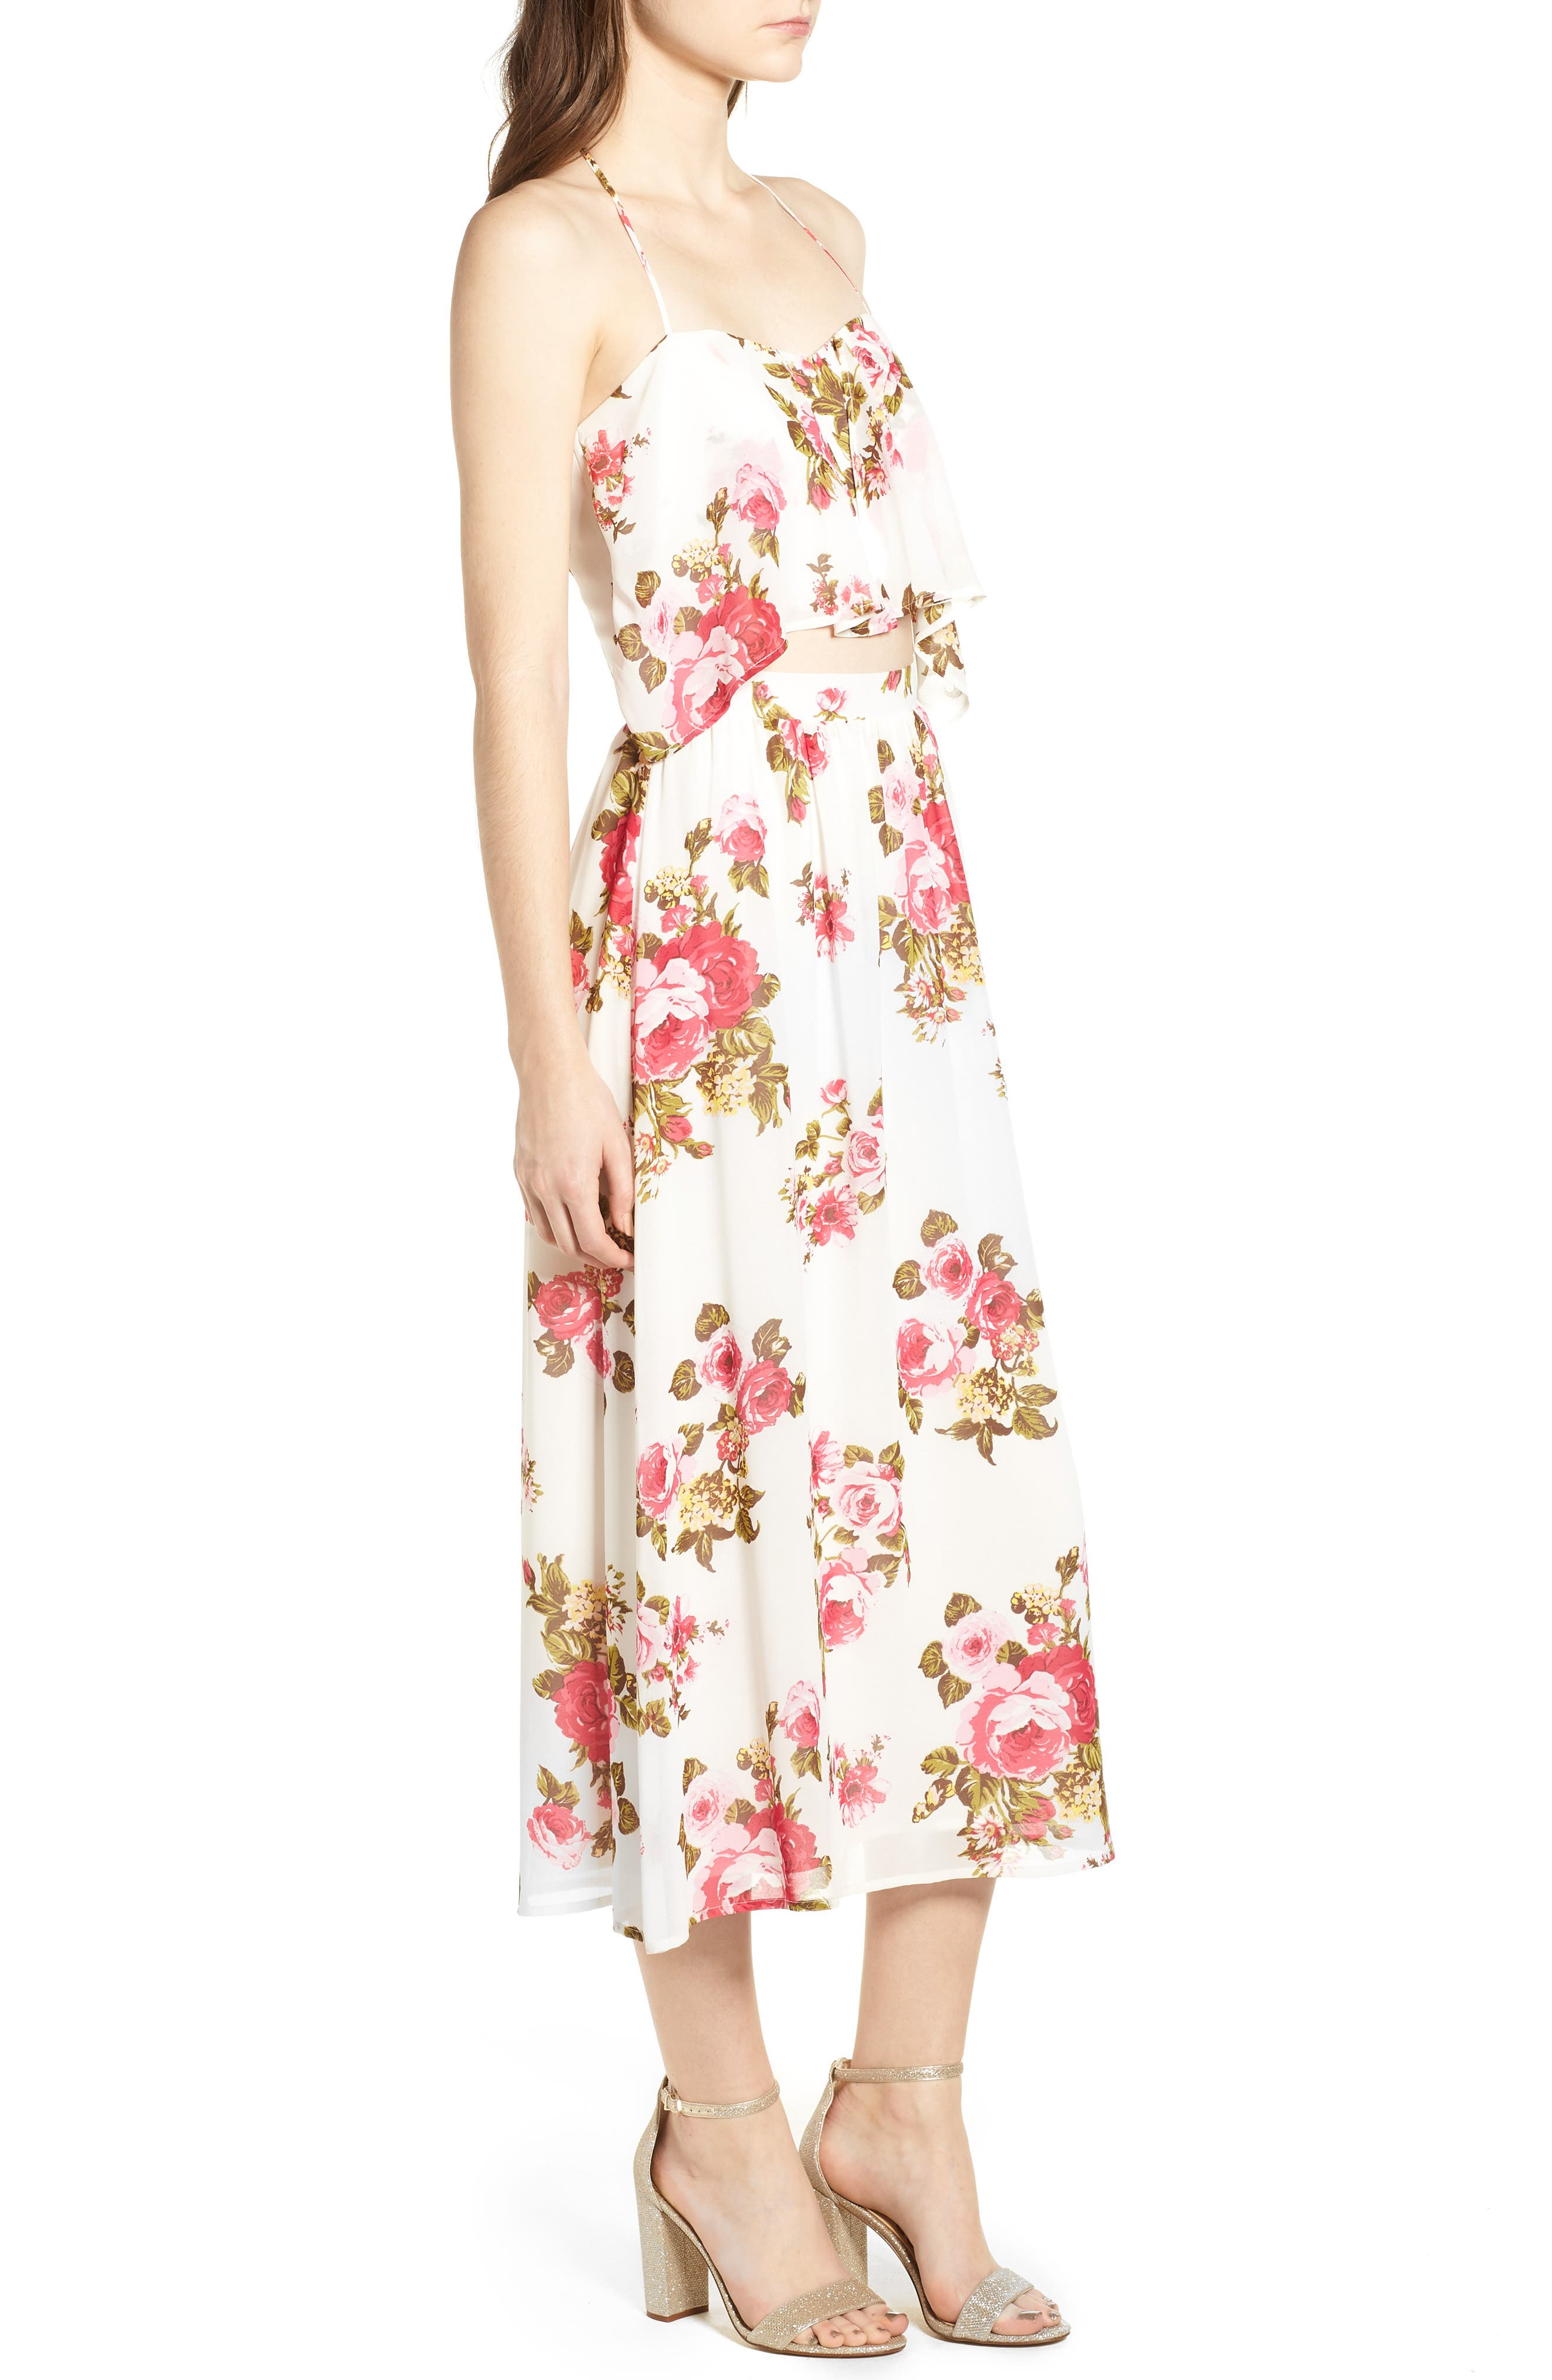 Floral Print Halter Midi Dress,                             Alternate thumbnail 3, color,                             Ivory Floral